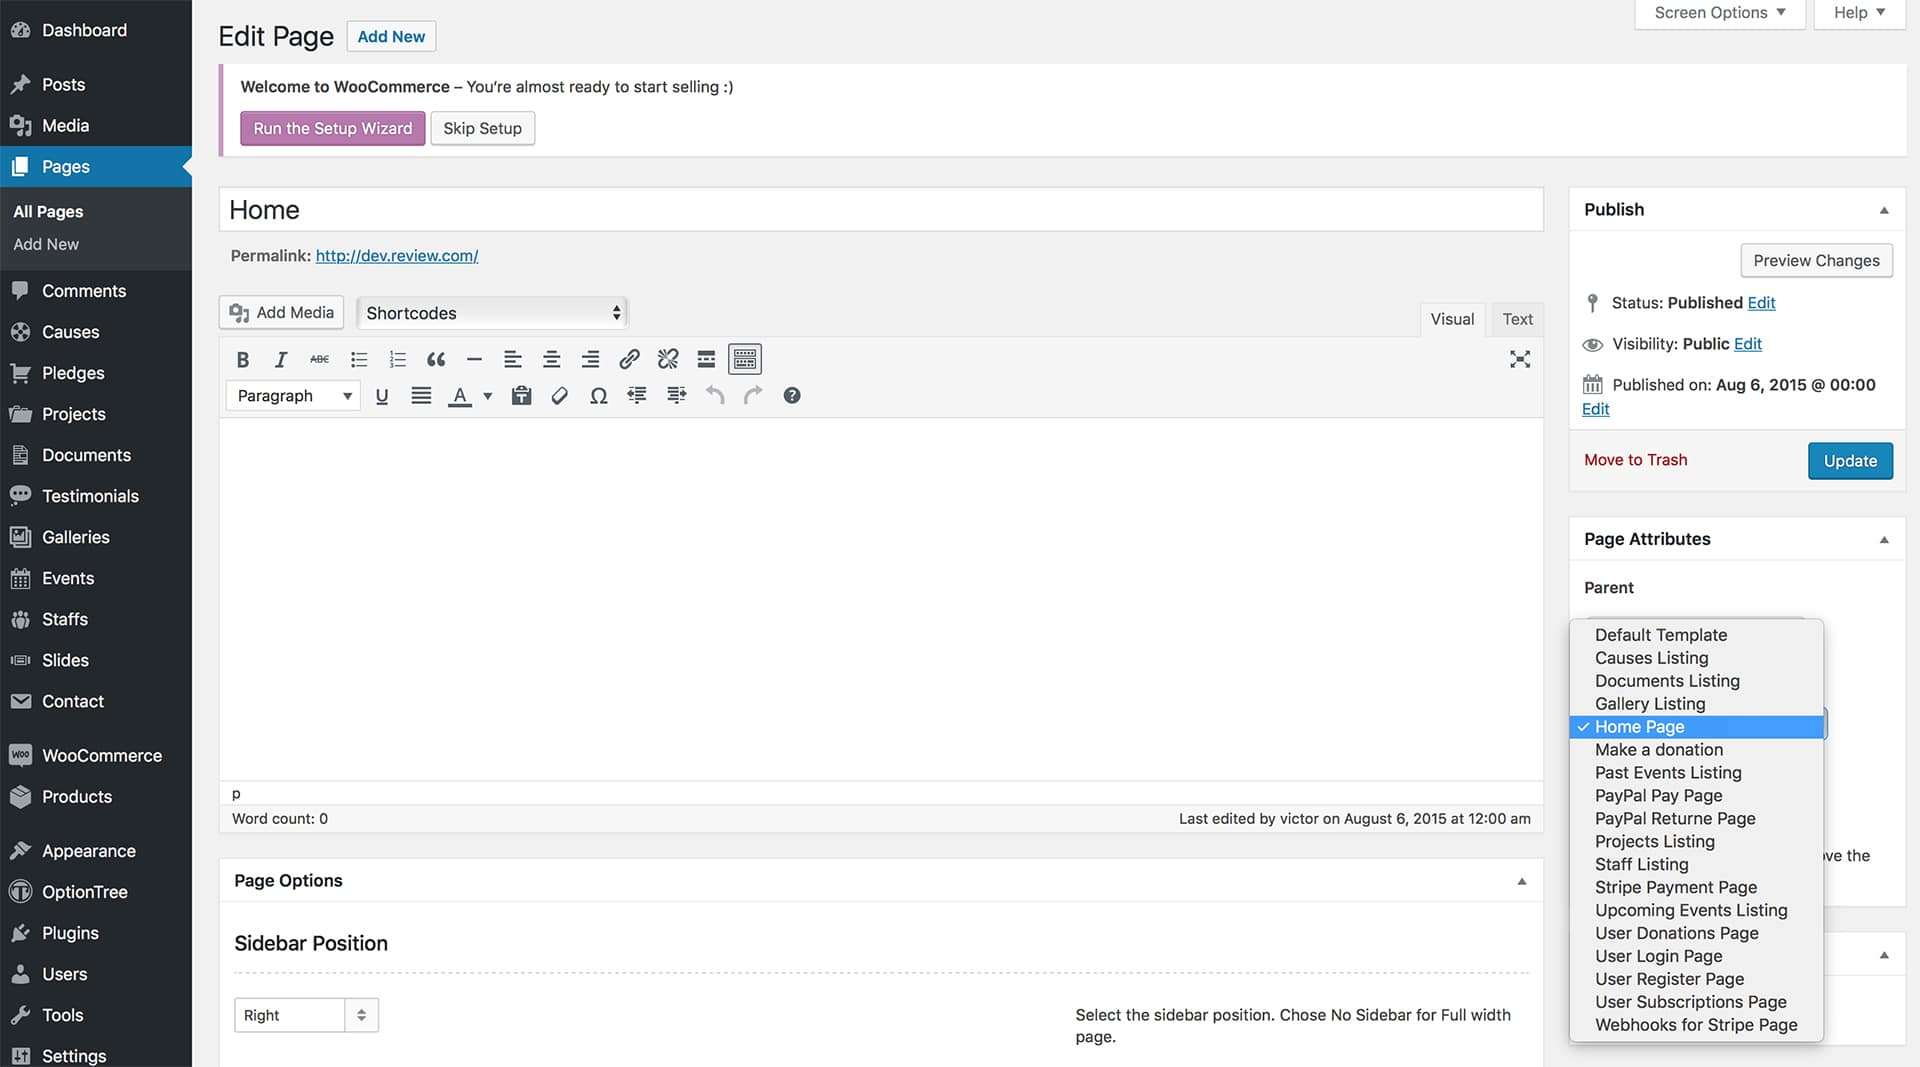 The page editor displaying the home page, with the Template set to Home page.